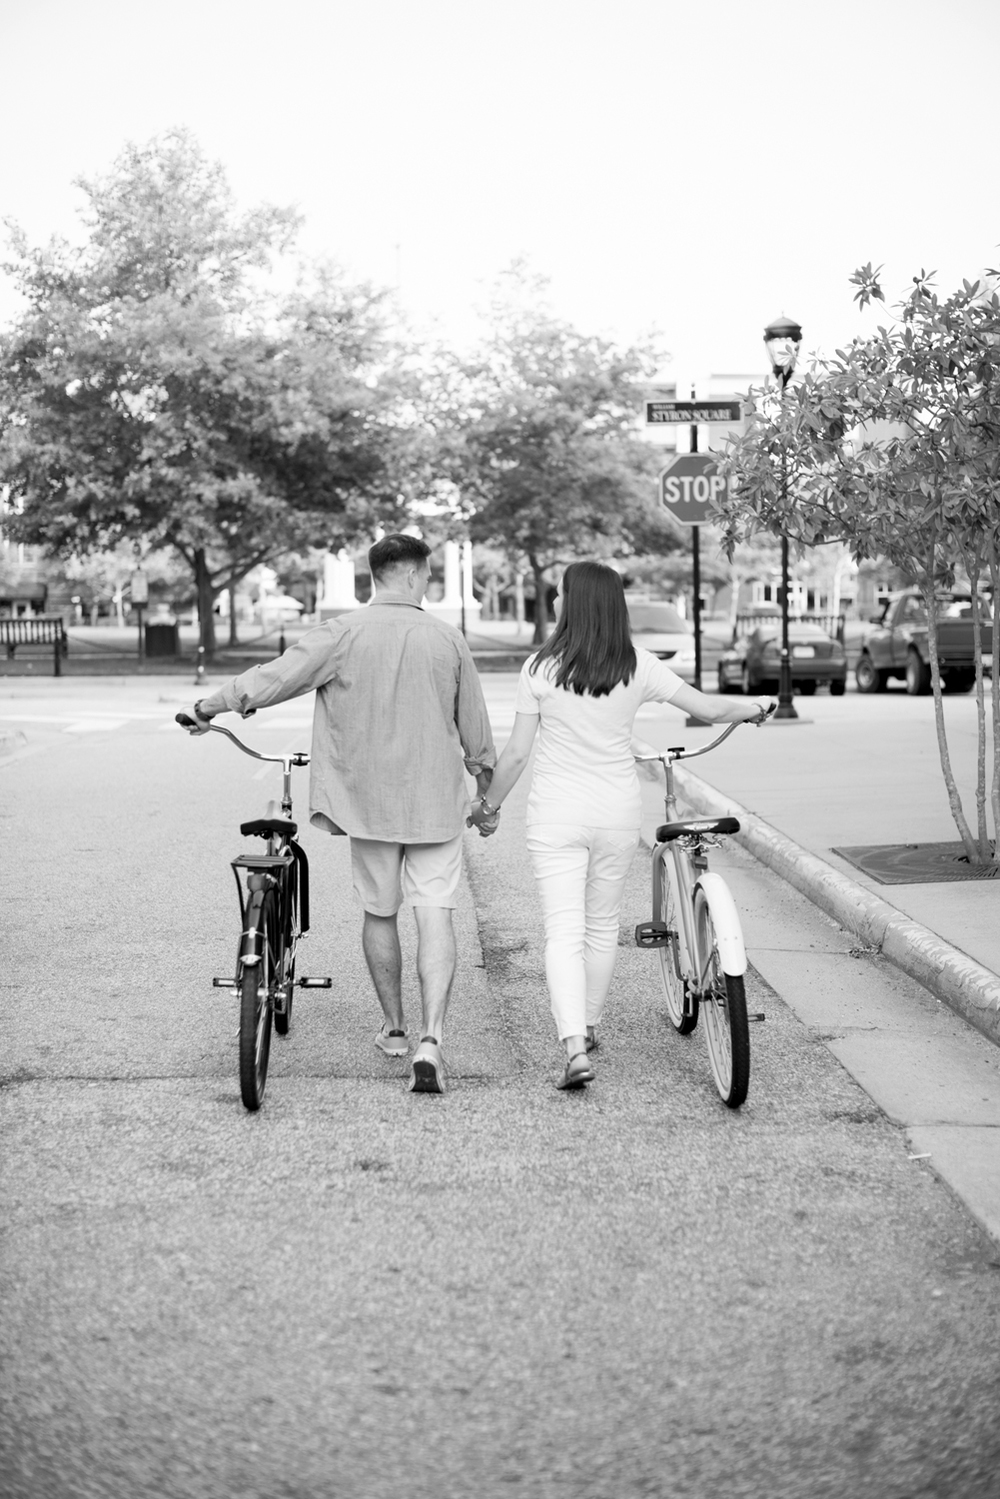 Couple walks with their bikes down a city street in Port Warwick, Newport News, Virginia